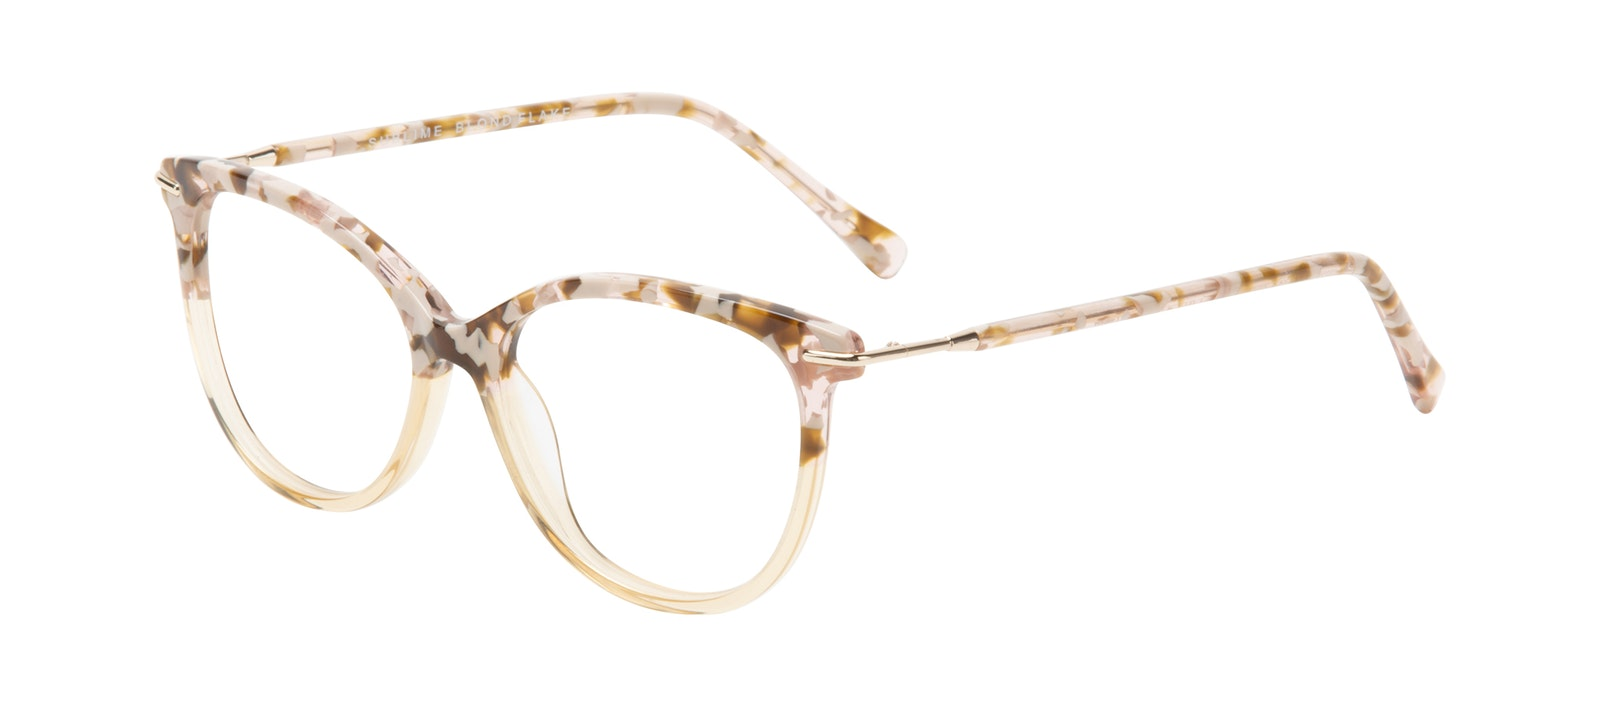 Affordable Fashion Glasses Round Eyeglasses Women Sublime Blond Flake Tilt